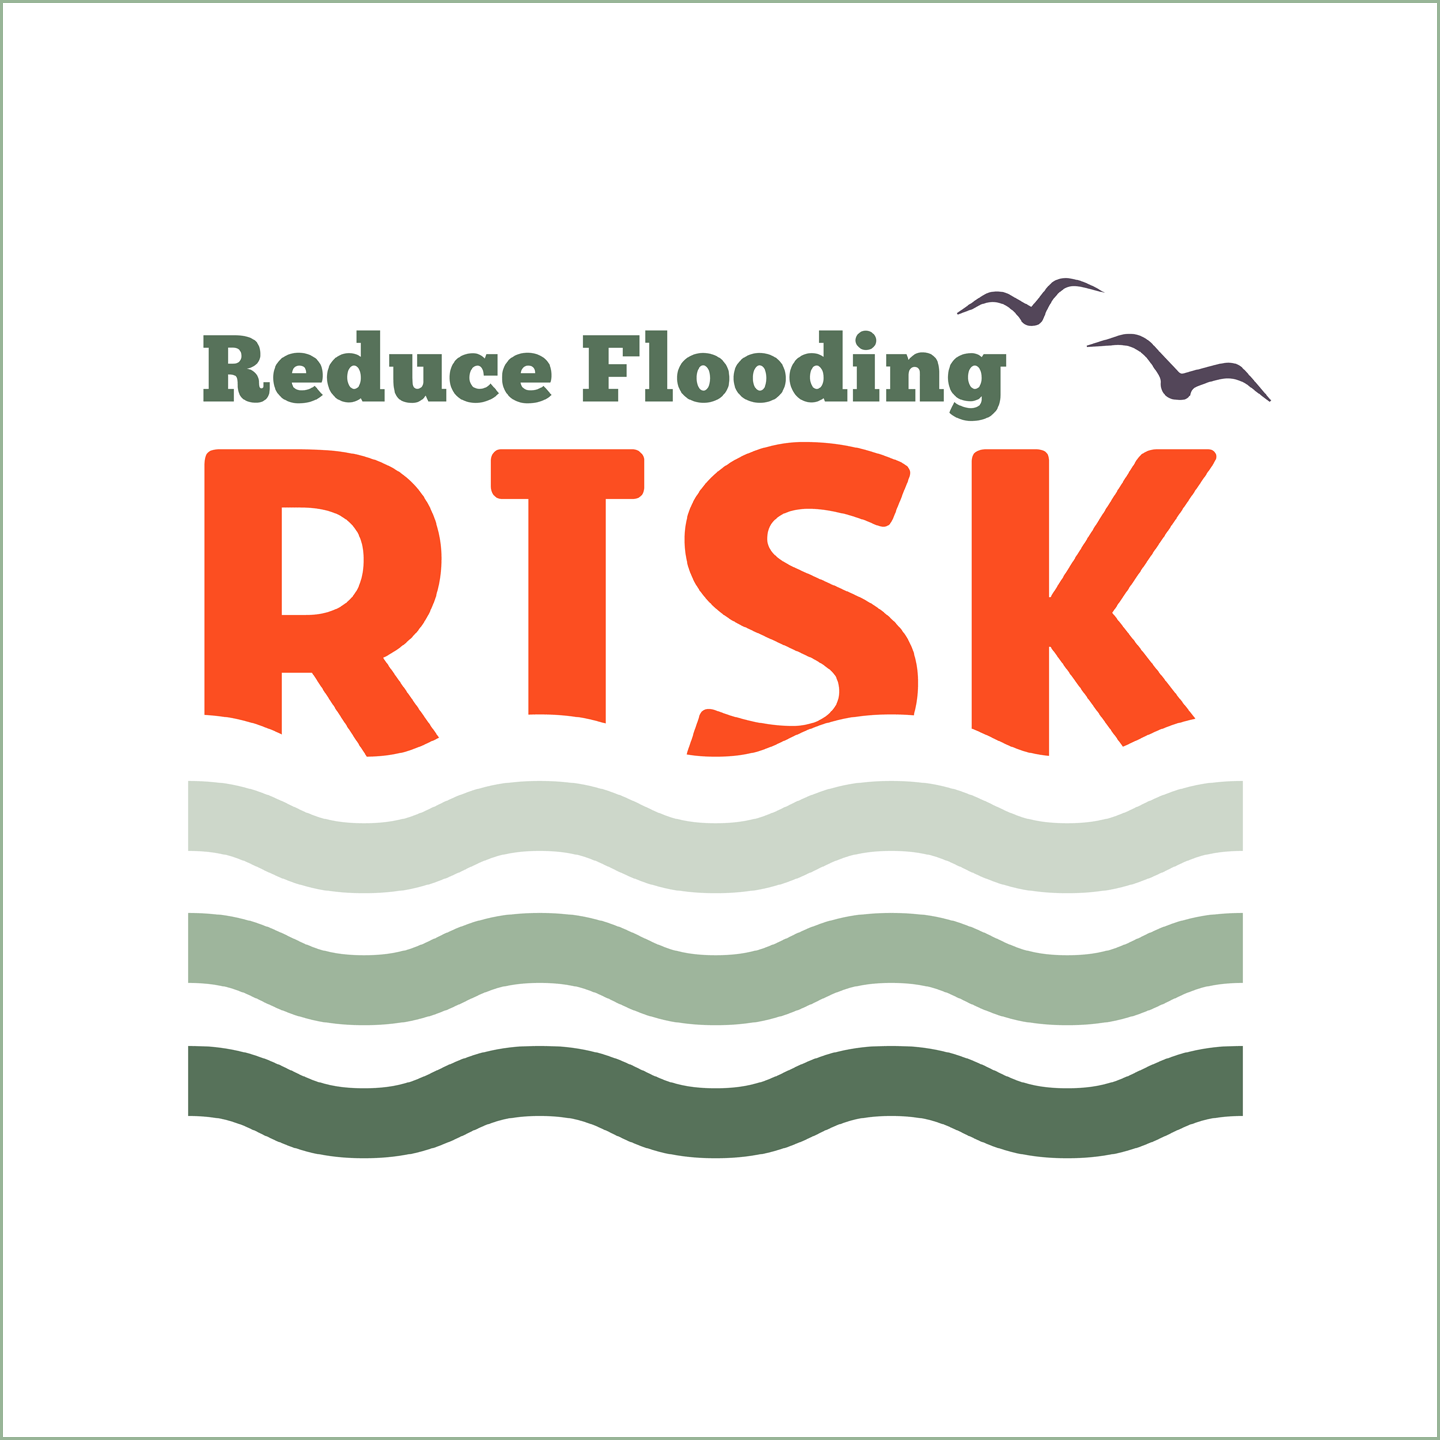 Plants and trees help to reduce the risk of flooding